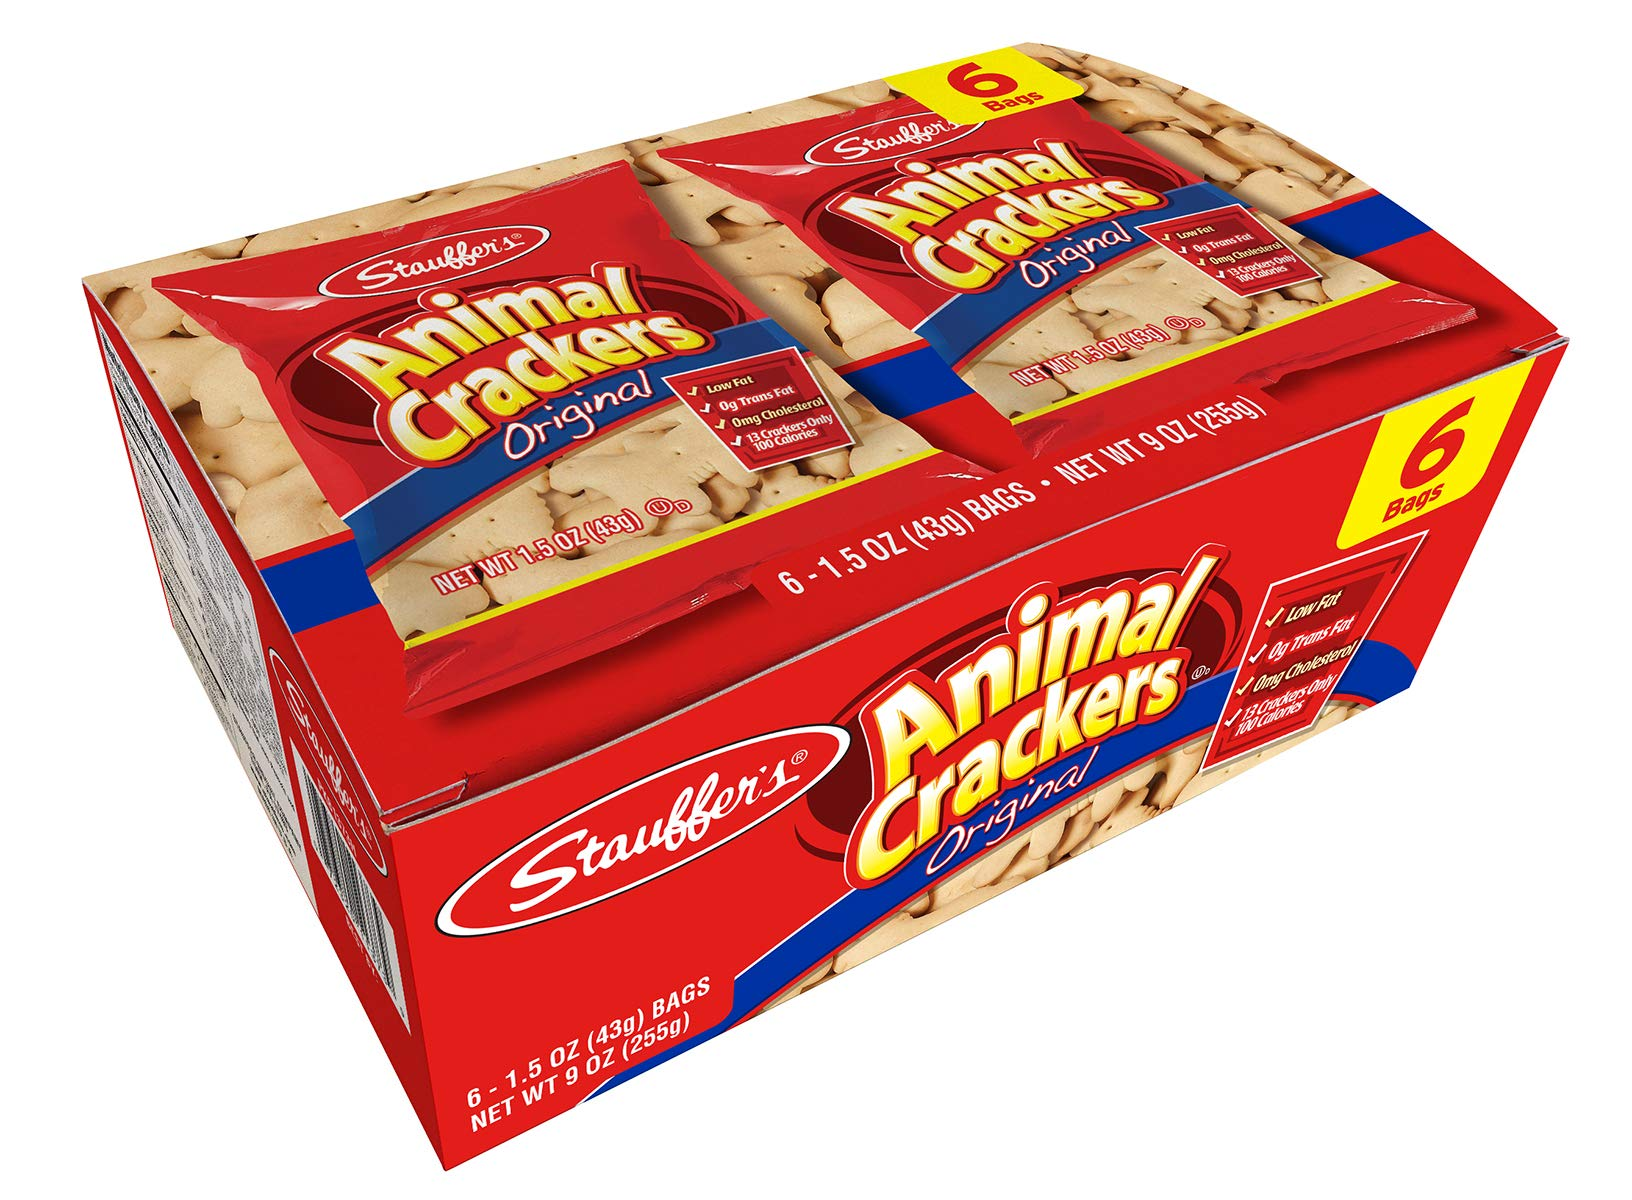 Stauffer's Original Animal Crackers, 12 Snack Packs, 1.5 Oz. Each by Stauffer Biscuit Company